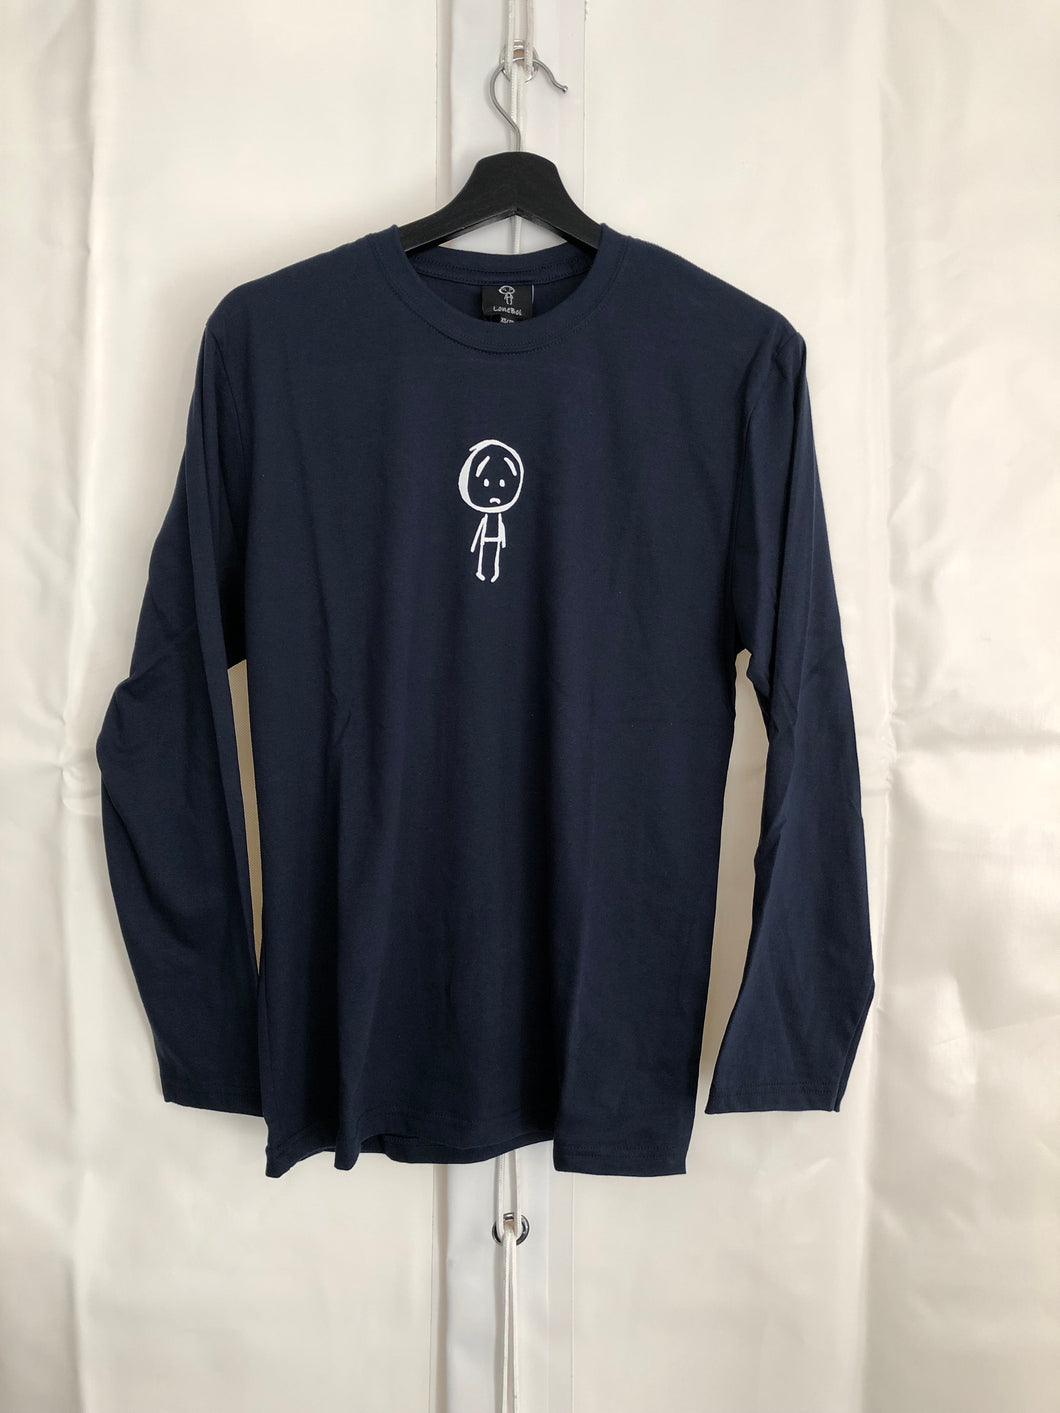 LoneBoi Navy Blue Long Sleeve